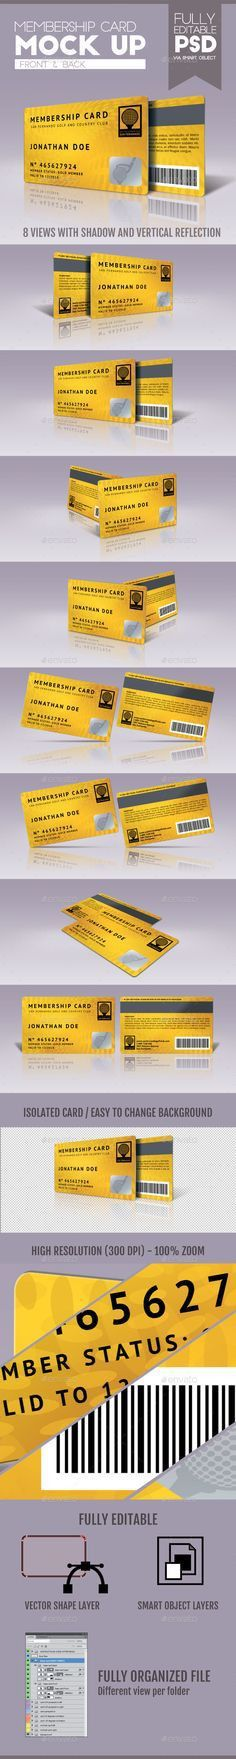 MMBC // Membership Card | Vip card, Business cards and Visit cards